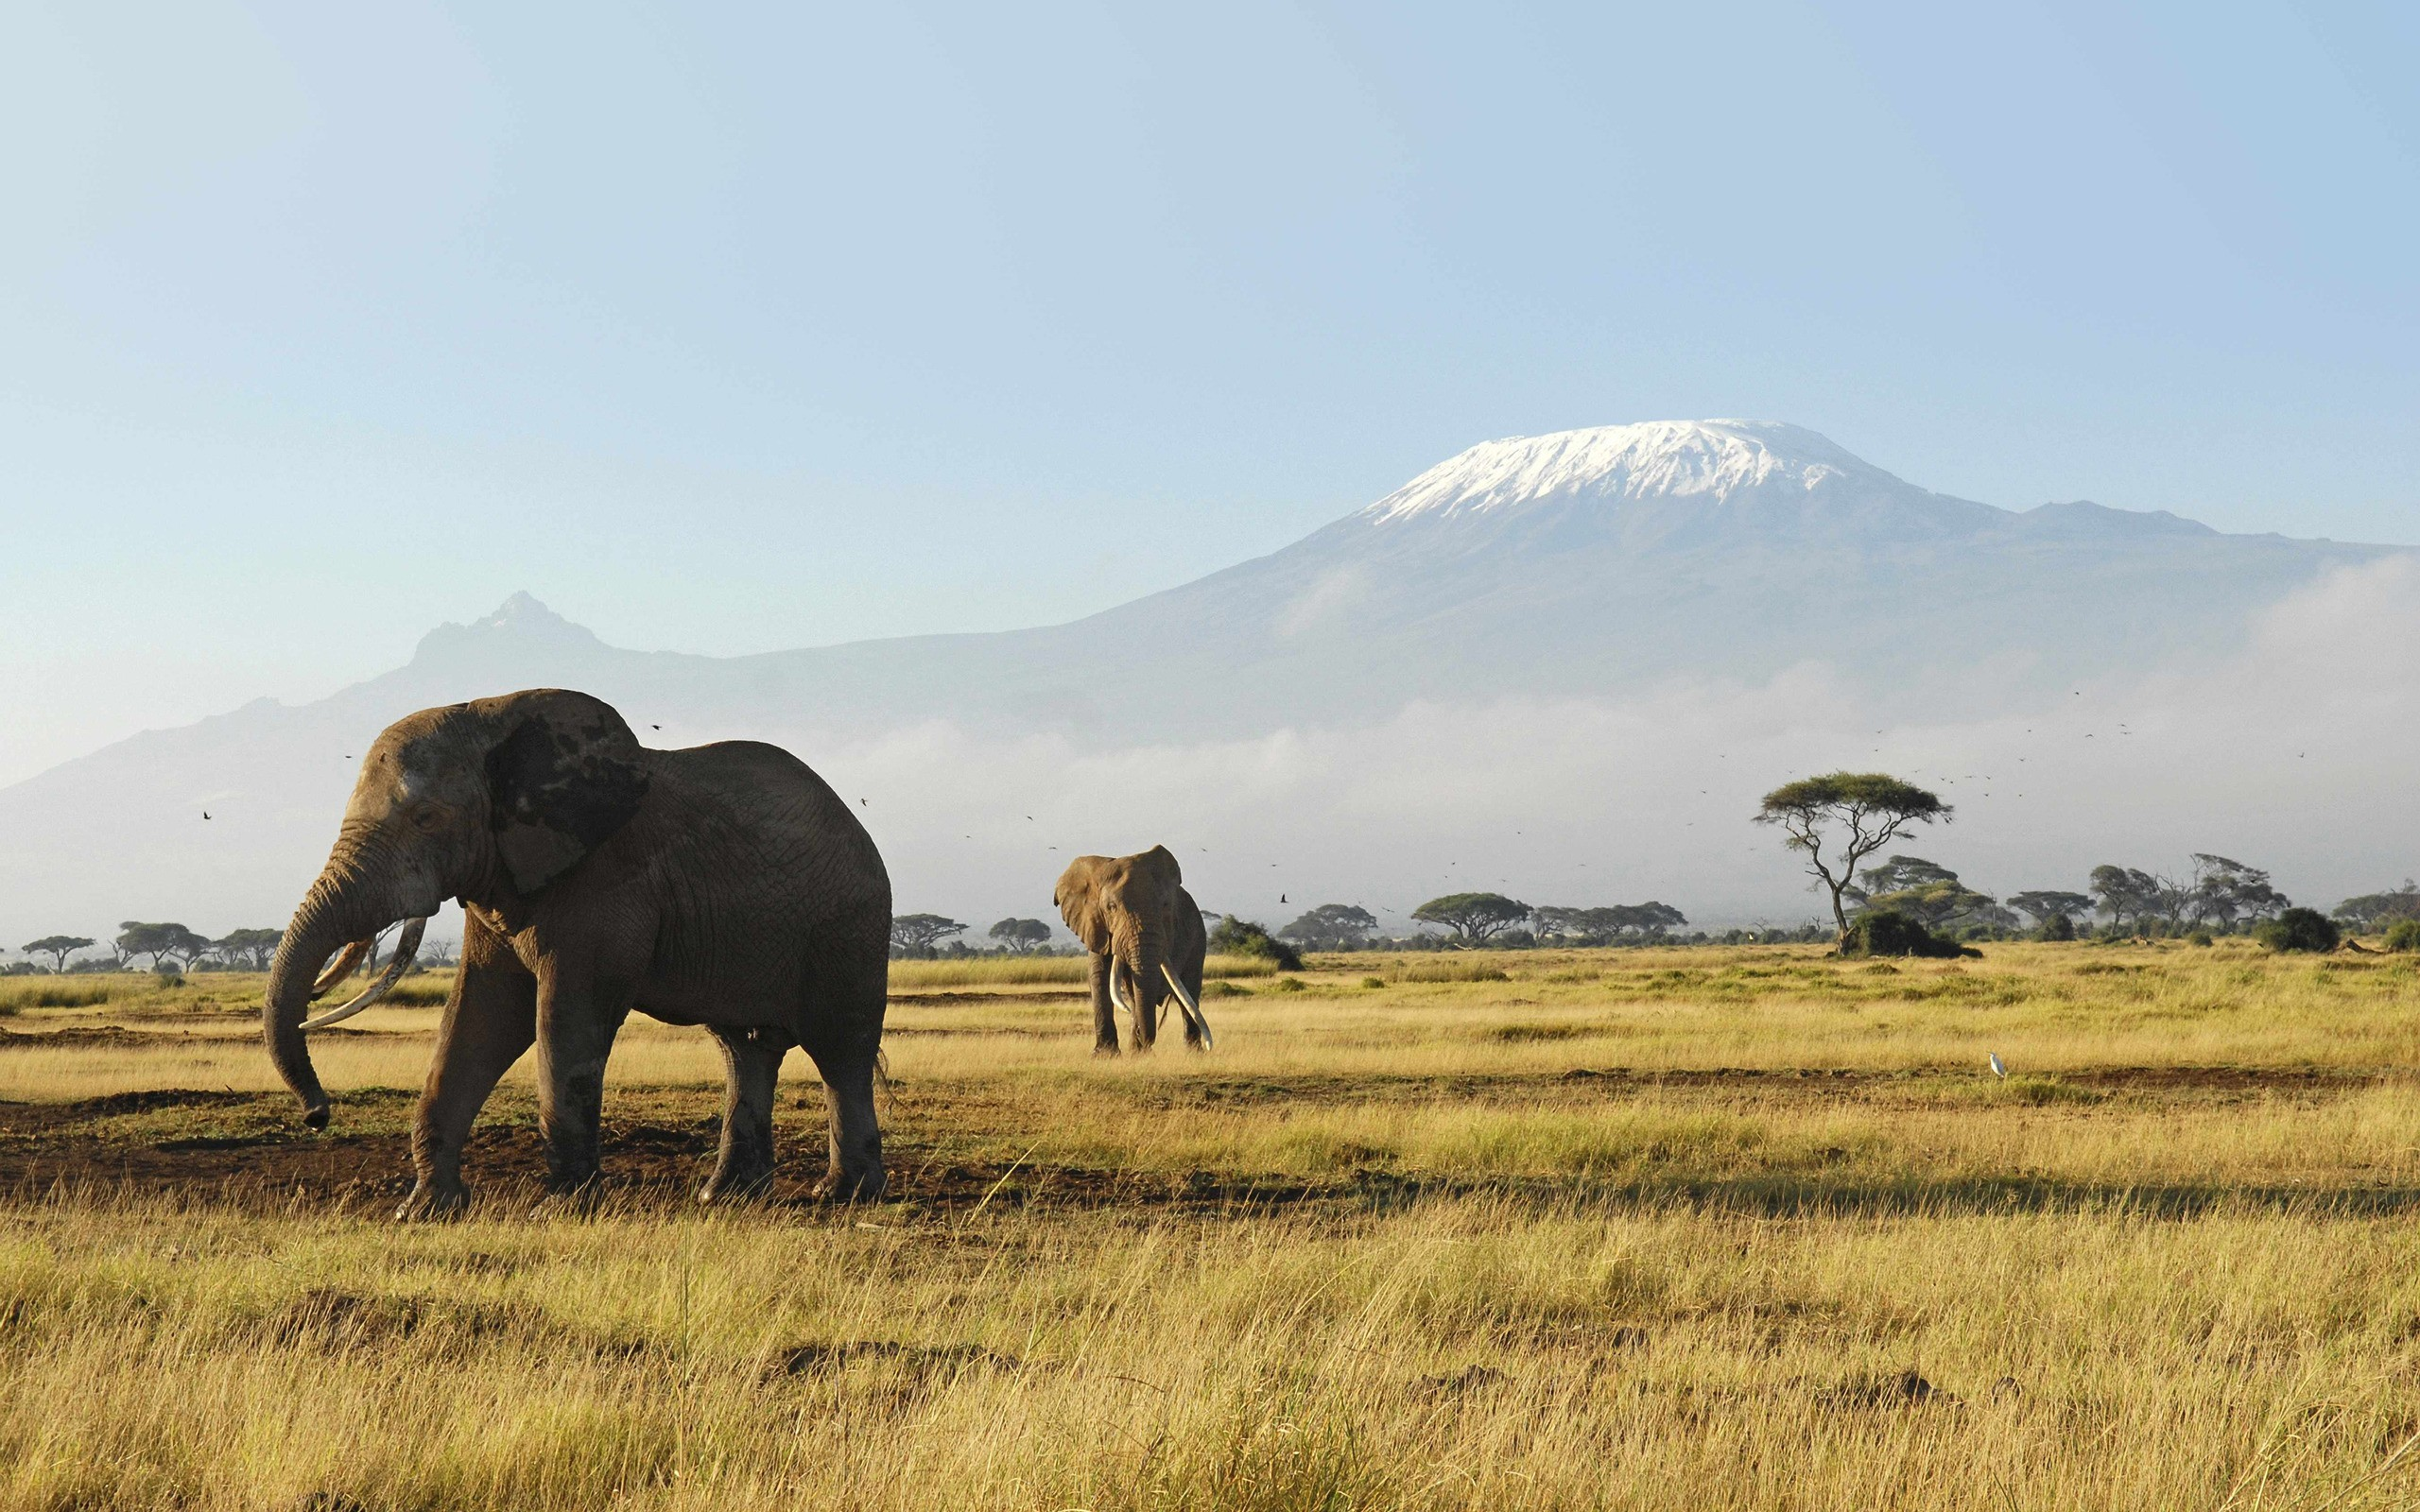 Mountains nature Animals elephants HD Wallpaper